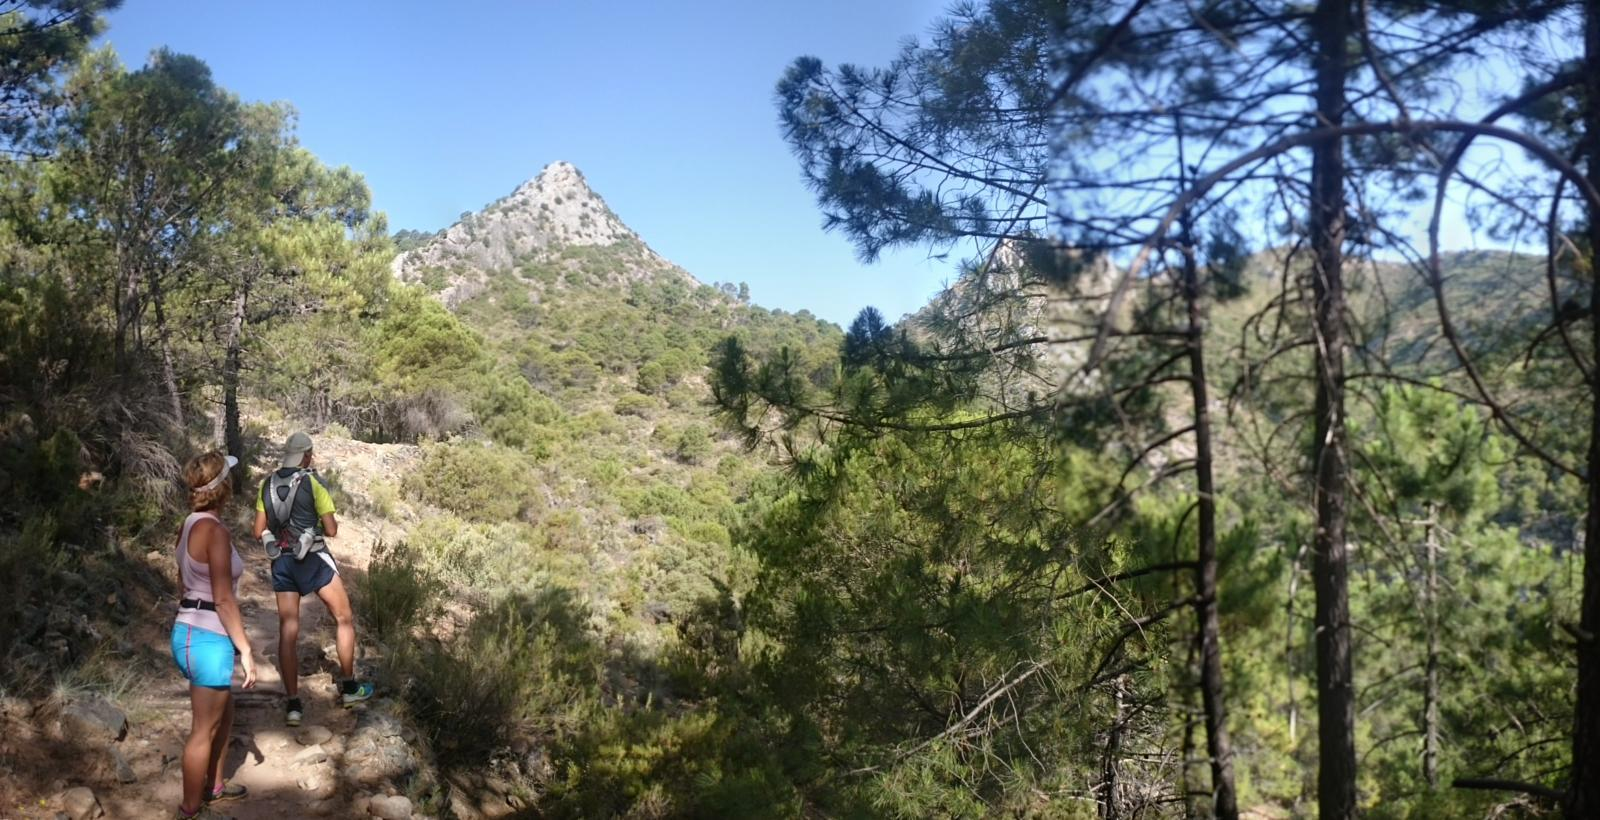 Photo of Cerezal - Mirador del Corzo - Castañar del Cerezal (Ojen, Malaga) (30-06-2015)